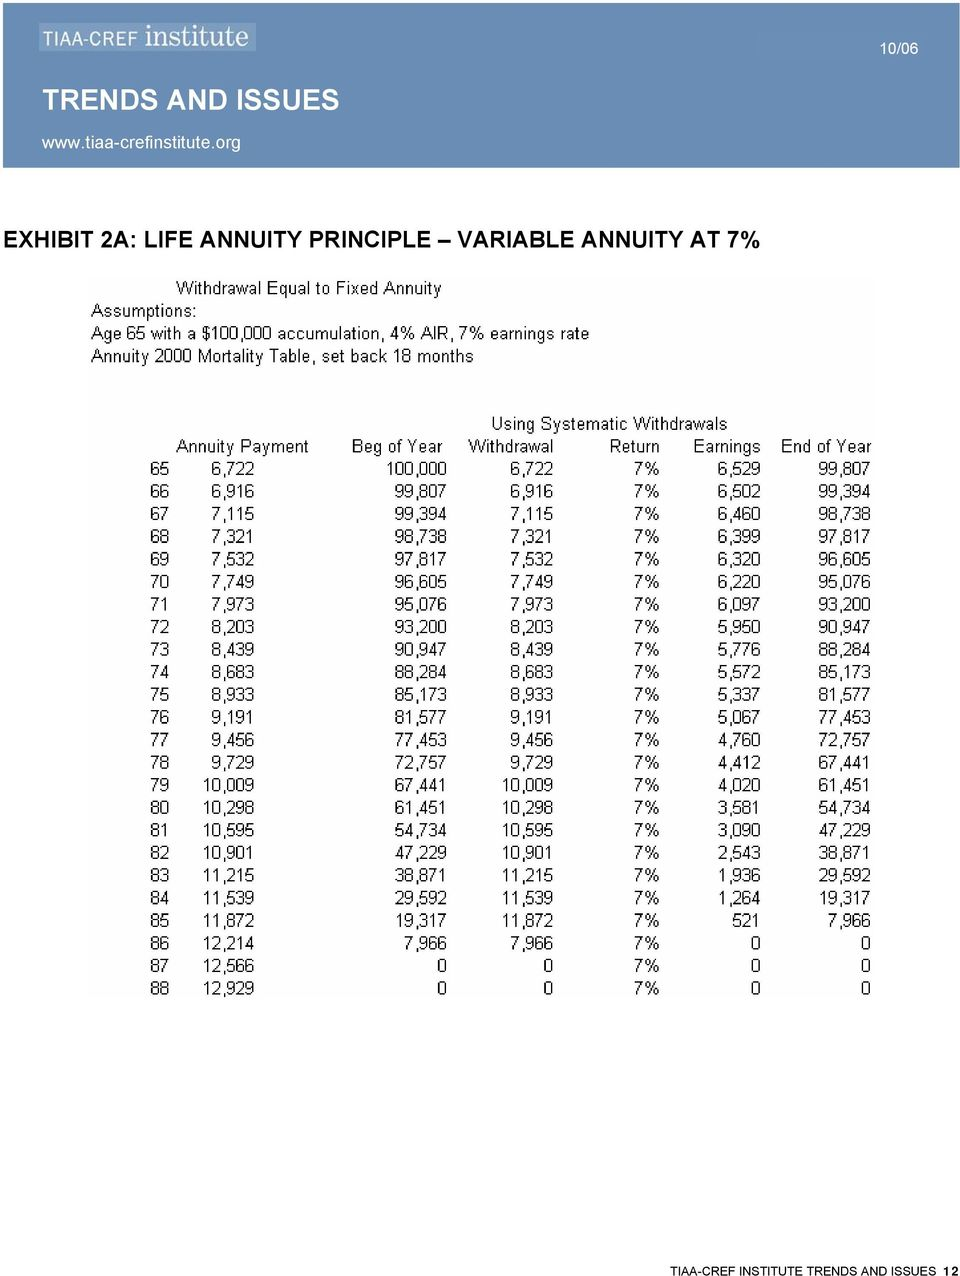 VARIABLE ANNUITY AT